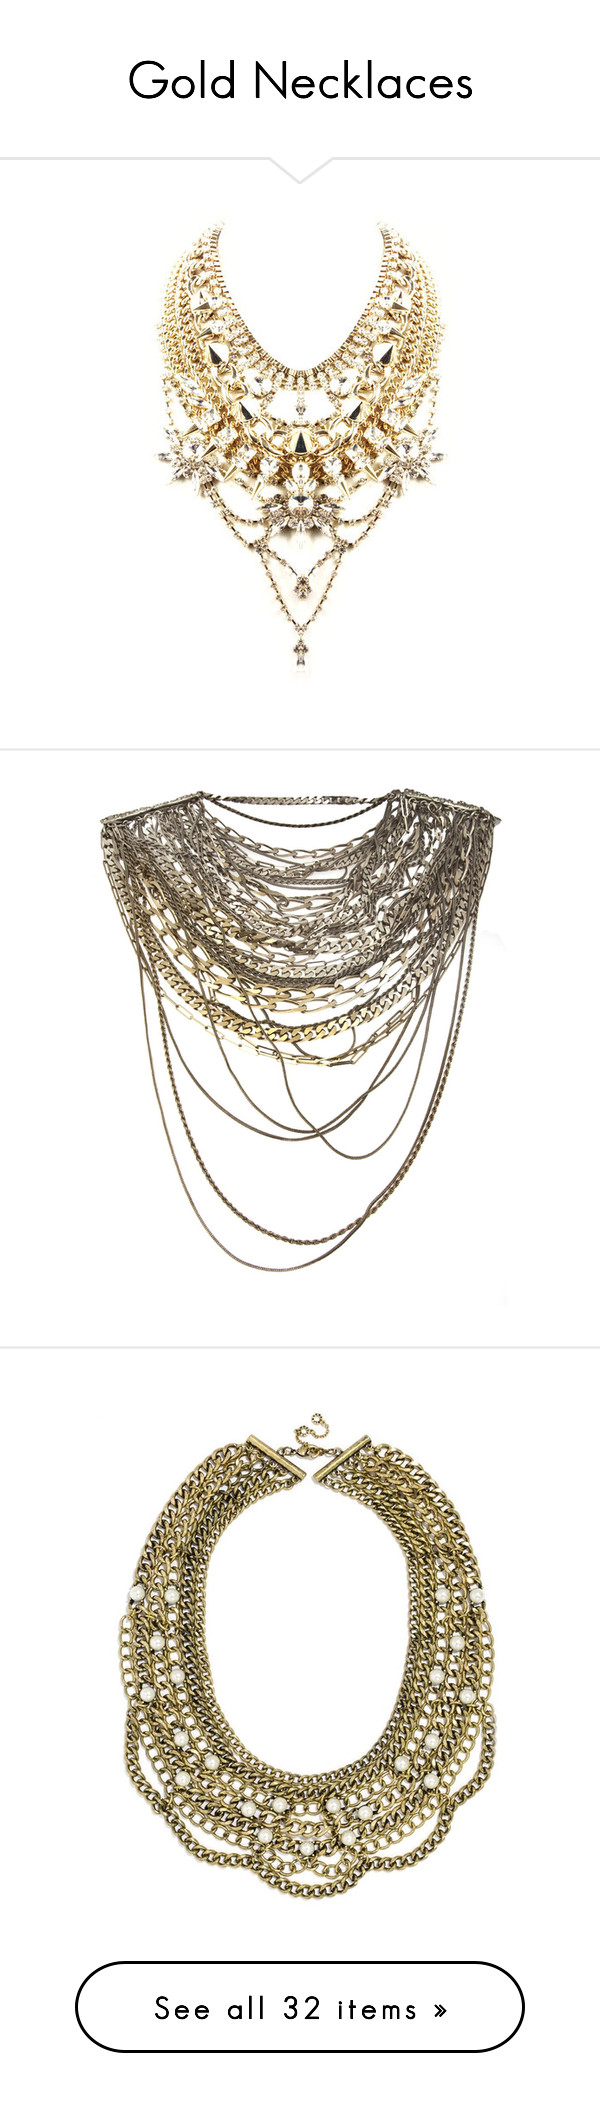 """""""Gold Necklaces"""" by diihpm ❤ liked on Polyvore featuring jewelry, necklaces, clear chain necklace, jewel necklace, clear crystal necklace, clear rhinestone necklace, gold tone chain necklace, accessories, collier and strand necklace"""